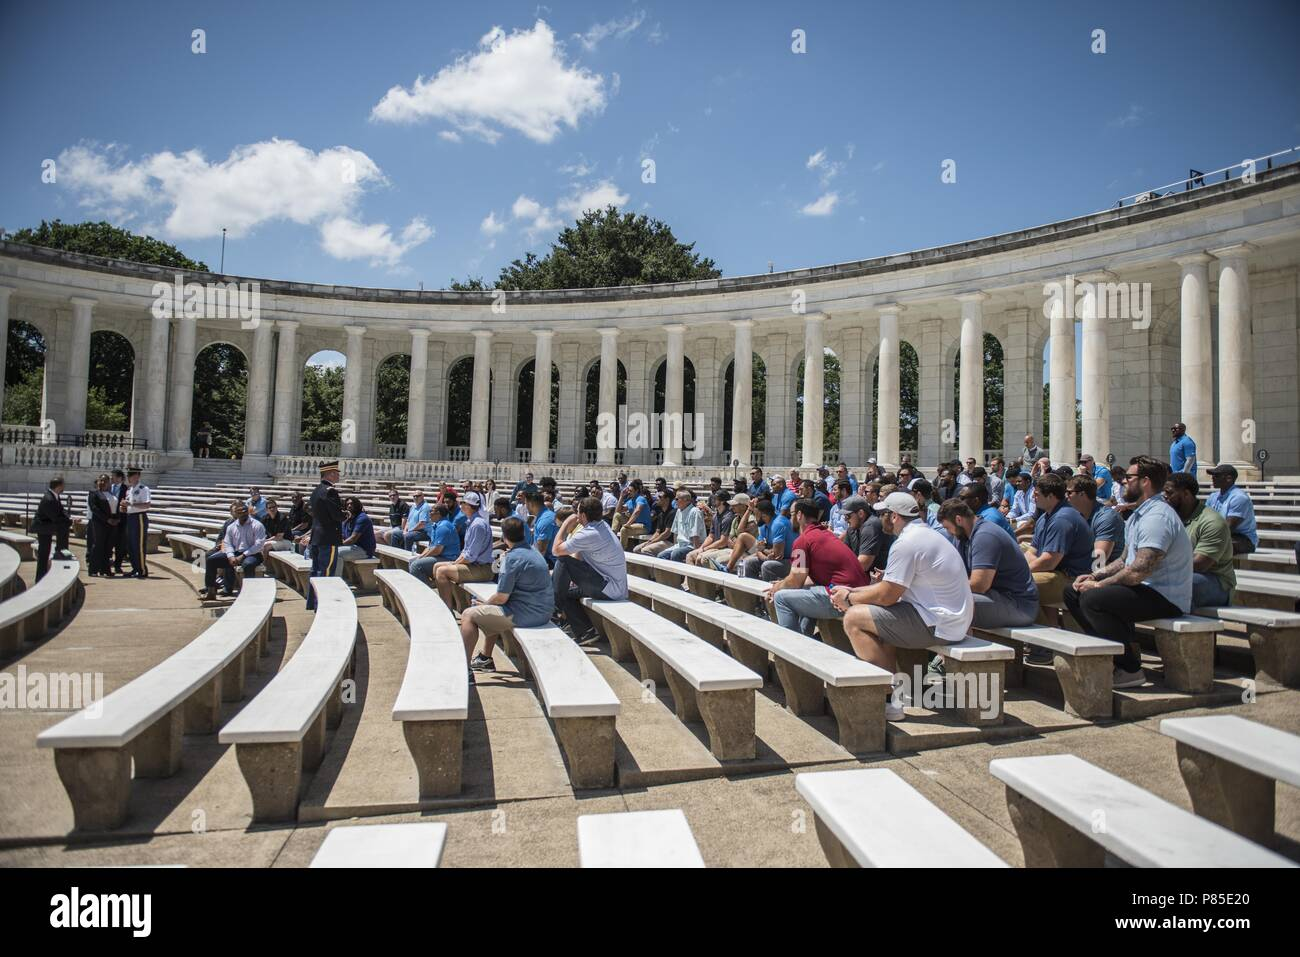 U.S. Army Col. Jerry Farnsworth (center), chief of staff, Arlington National Cemetery and Army National Military Cemeteries, speaks with members of the Detroit Lions inside of the Memorial Amphitheater at Arlington National Cemetery, Arlington, Virginia, June 12, 2018, June 12, 2018. The Lions visited Arlington National Cemetery to participate in an educational staff ride where they spoke with cemetery representatives, field operations, received a tour of the Memorial Amphitheater Display Room from ANC historians, and watched the Changing of the Guard Ceremony at the Tomb of the Unknown Soldie - Stock Image